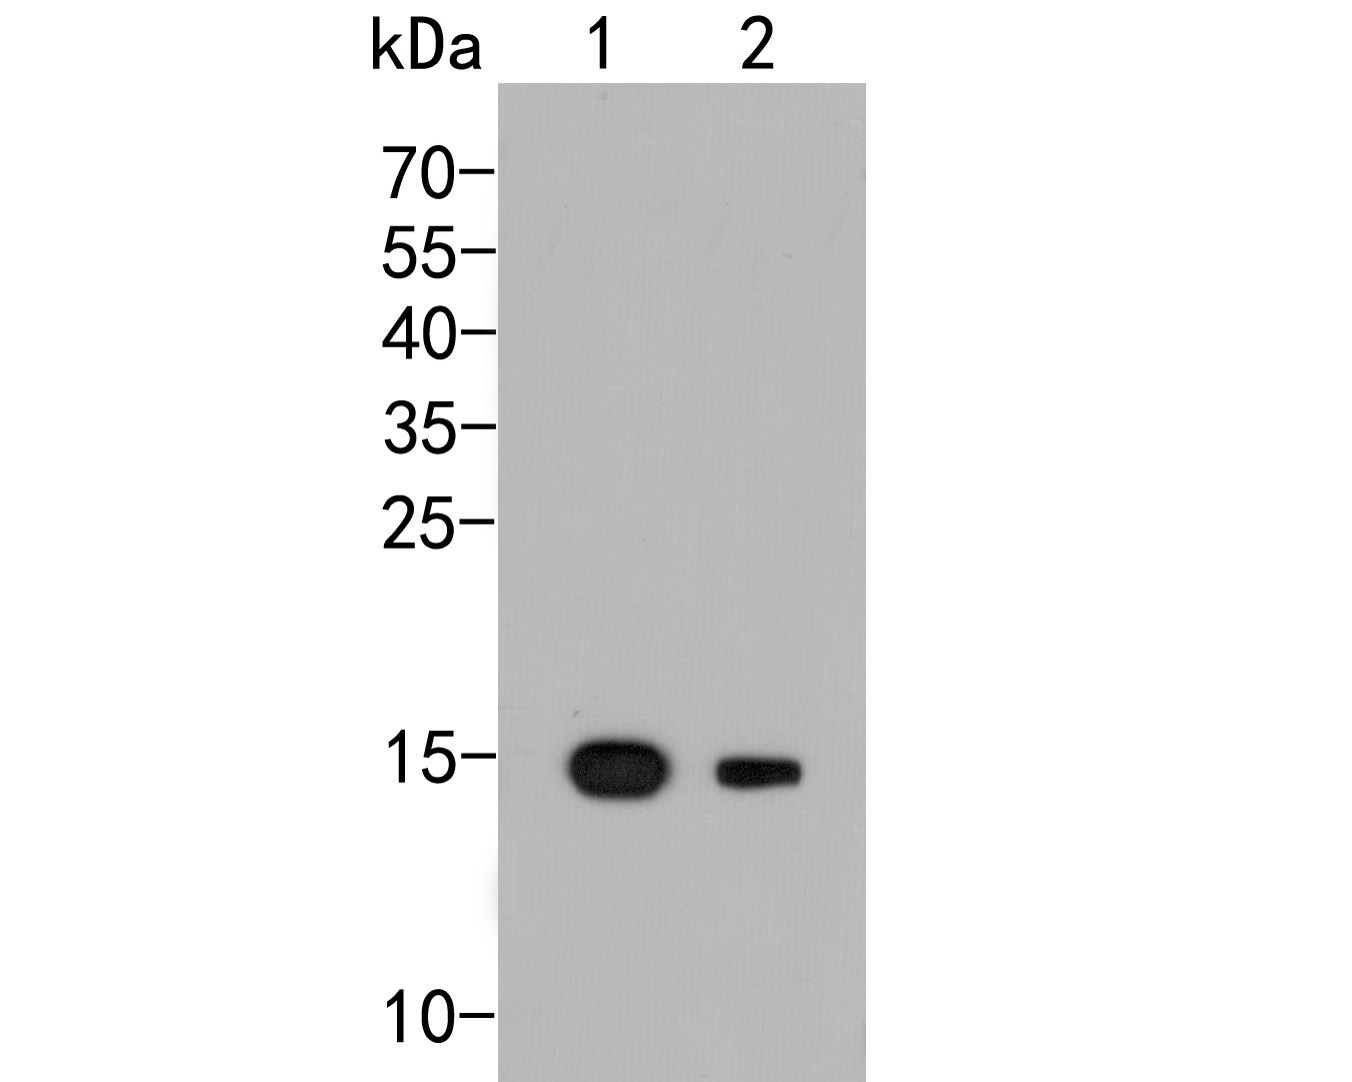 Western blot analysis of GOLGA7 on different lysates. Proteins were transferred to a PVDF membrane and blocked with 5% BSA in PBS for 1 hour at room temperature. The primary antibody (ER2001-22, 1/500) was used in 5% BSA at room temperature for 2 hours. Goat Anti-Rabbit IgG - HRP Secondary Antibody (HA1001) at 1:5,000 dilution was used for 1 hour at room temperature.<br /> Positive control: <br /> Lane 1: Human stomach tissue lysate<br /> Lane 2: A431 cell lysate